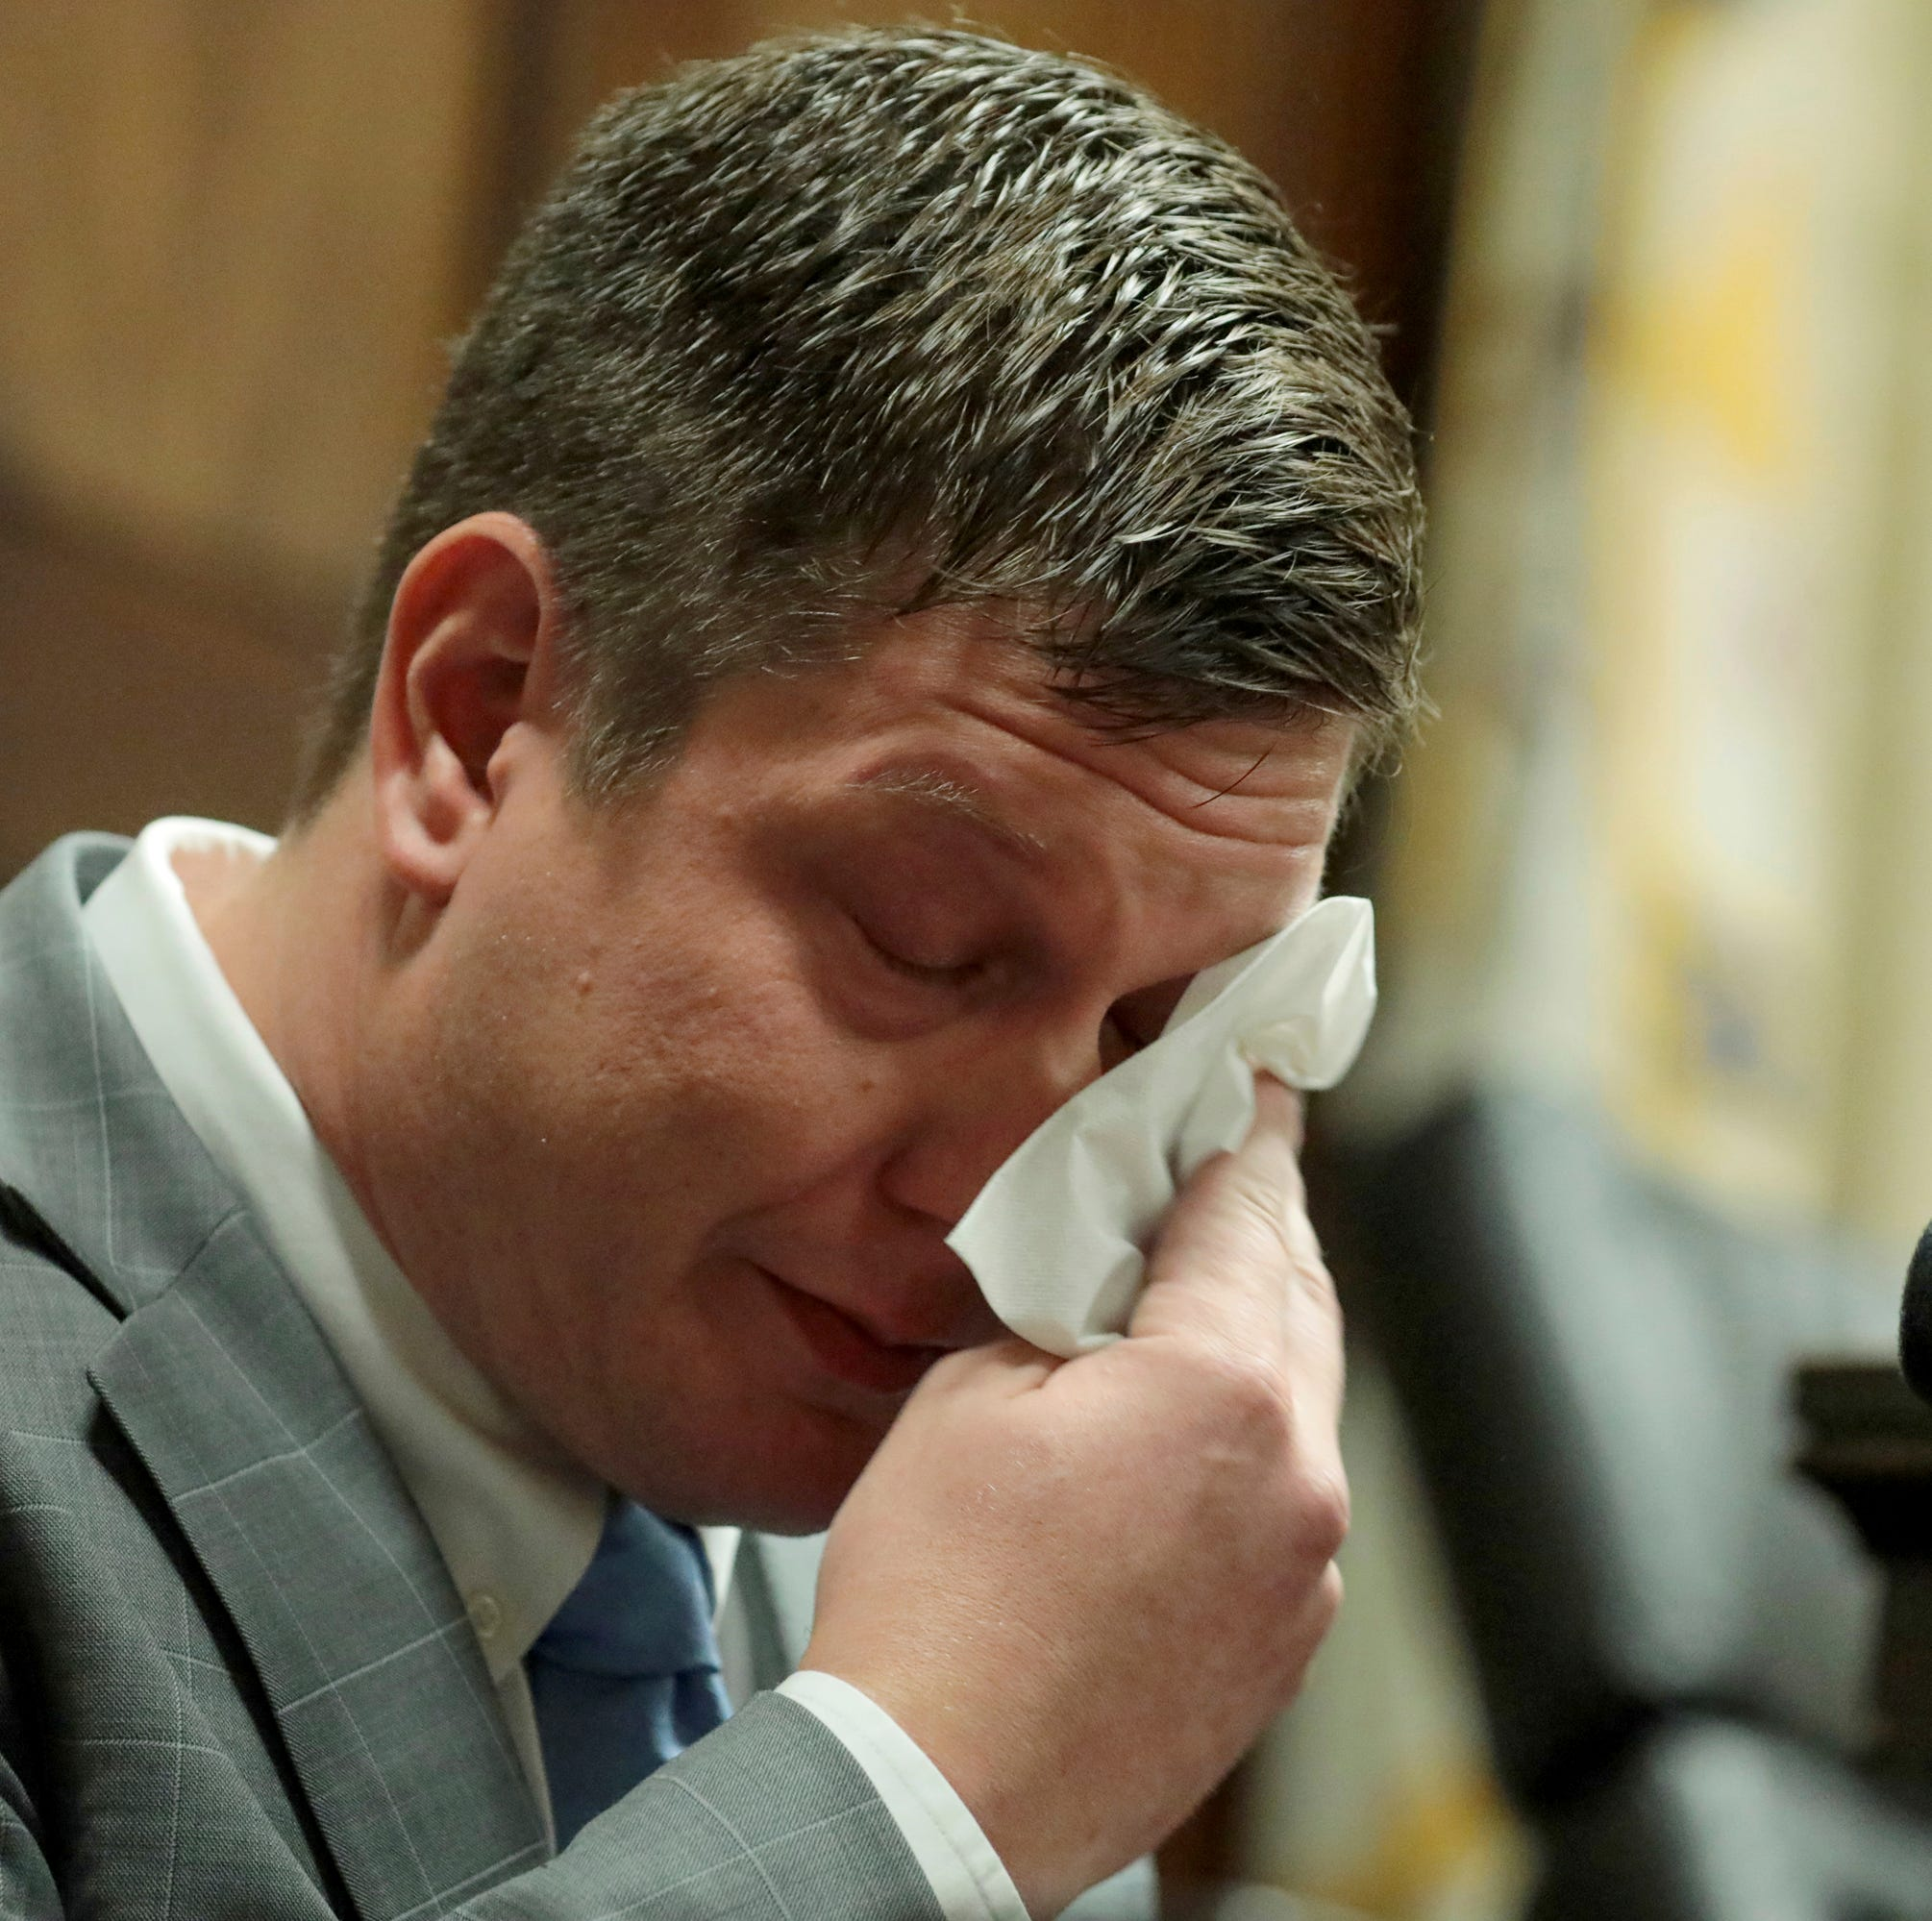 Chicago cop on trial for Laquan McDonald killing testifies: 'His eyes were bugging out'